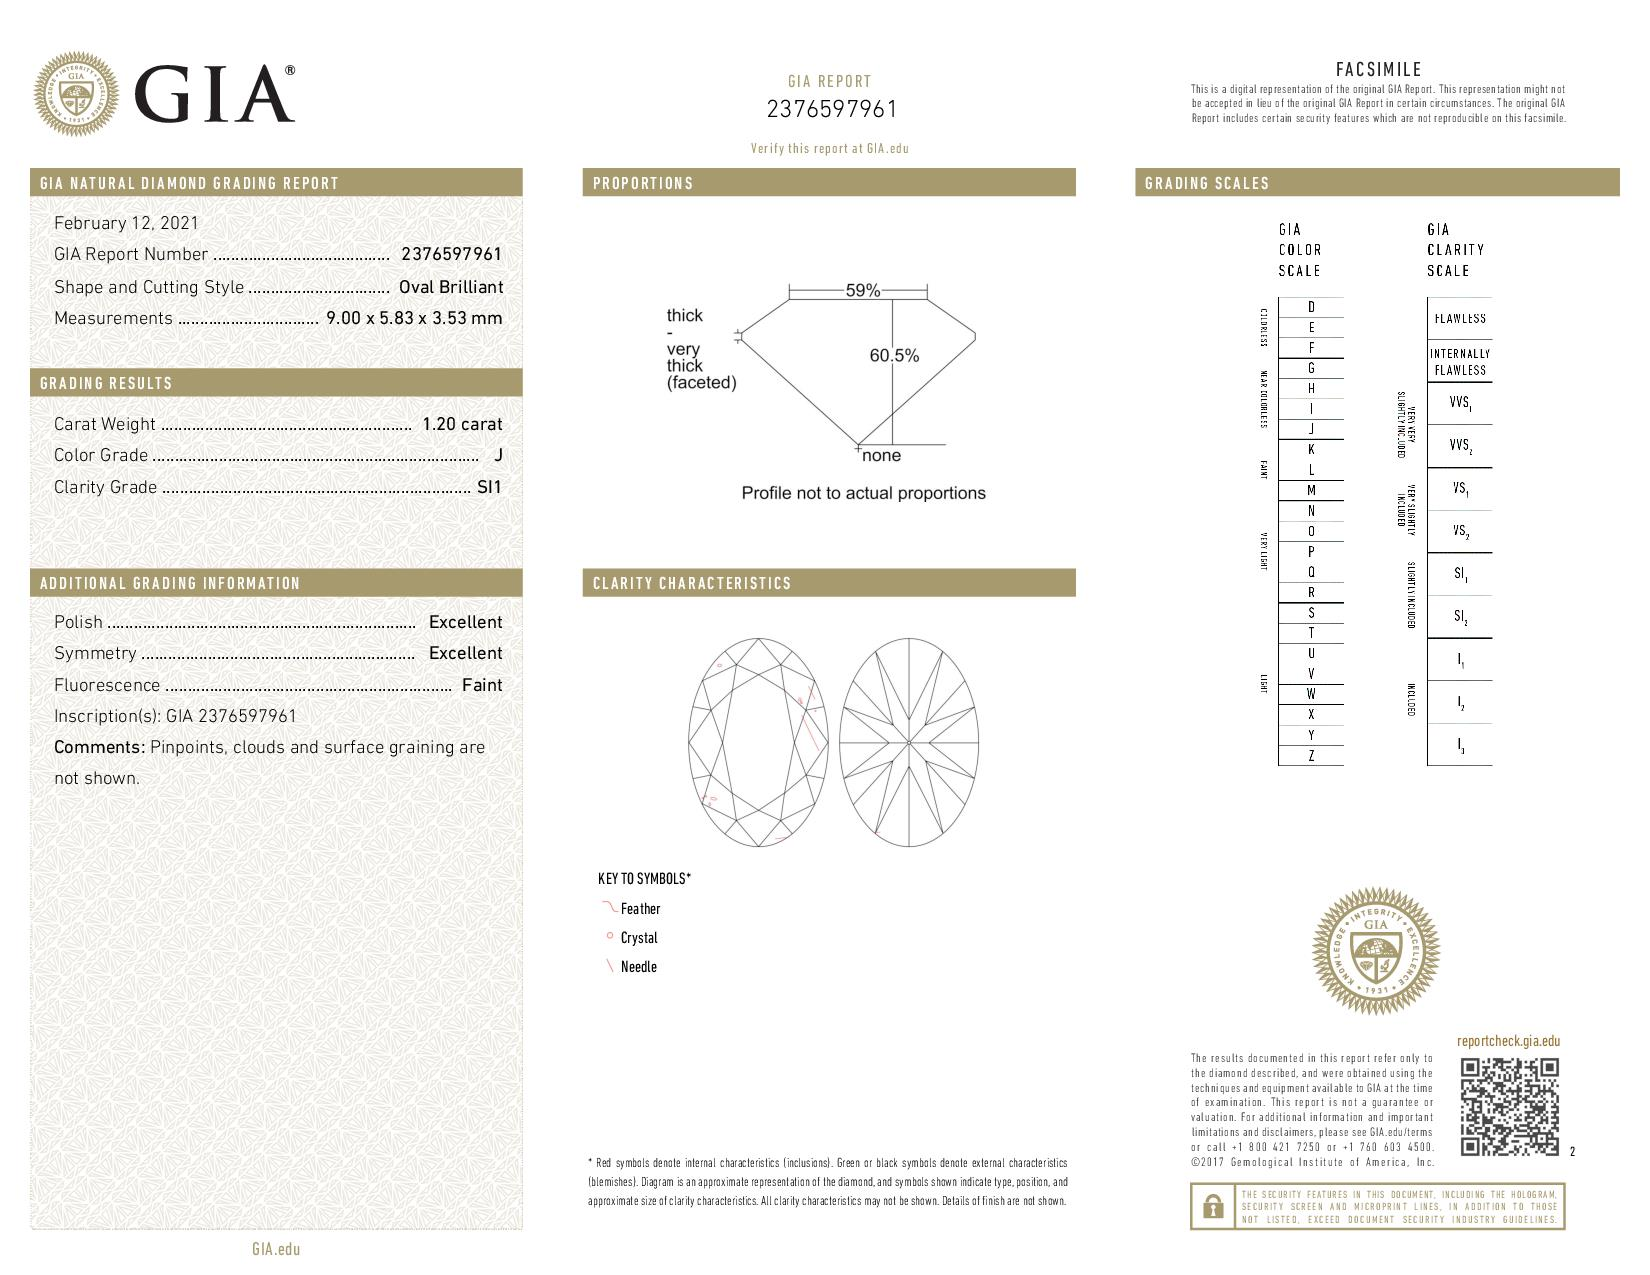 This is a 1.20 carat oval shape, J color, SI1 clarity natural diamond accompanied by a GIA grading report.